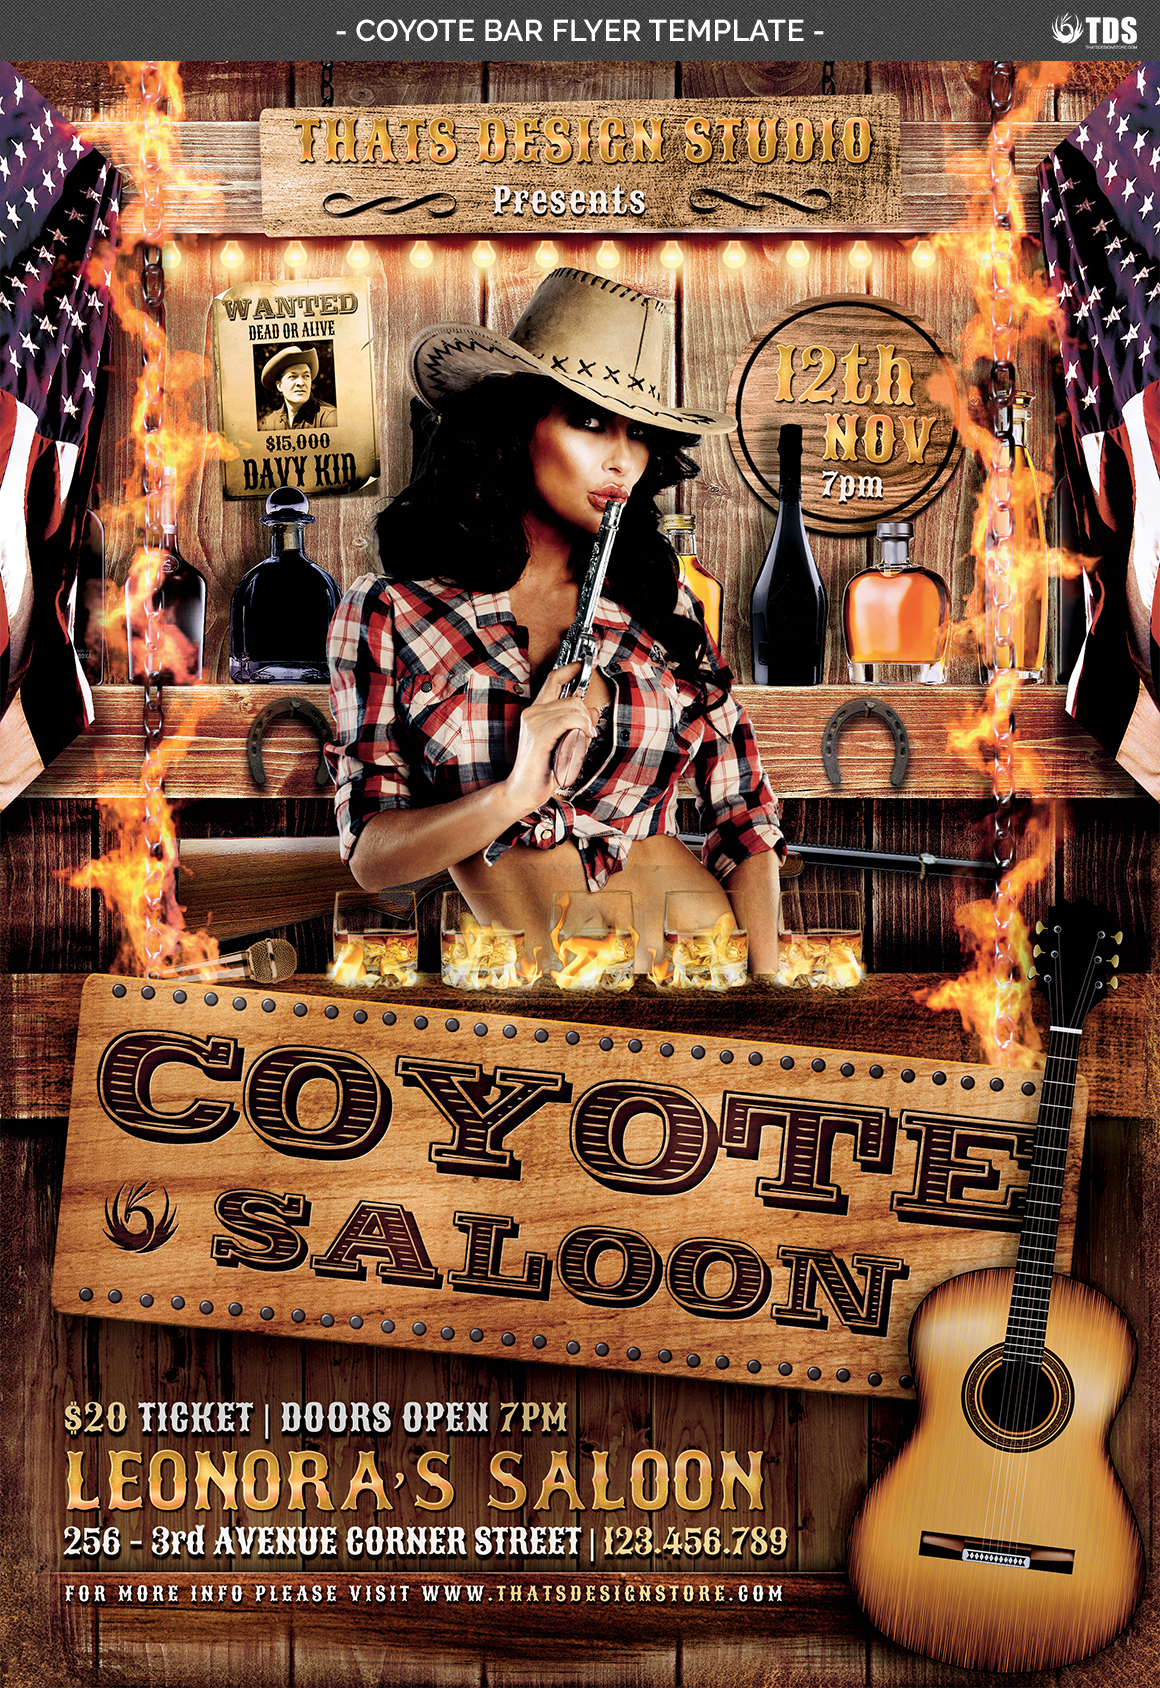 Coyote Bar Flyer Template example image 4